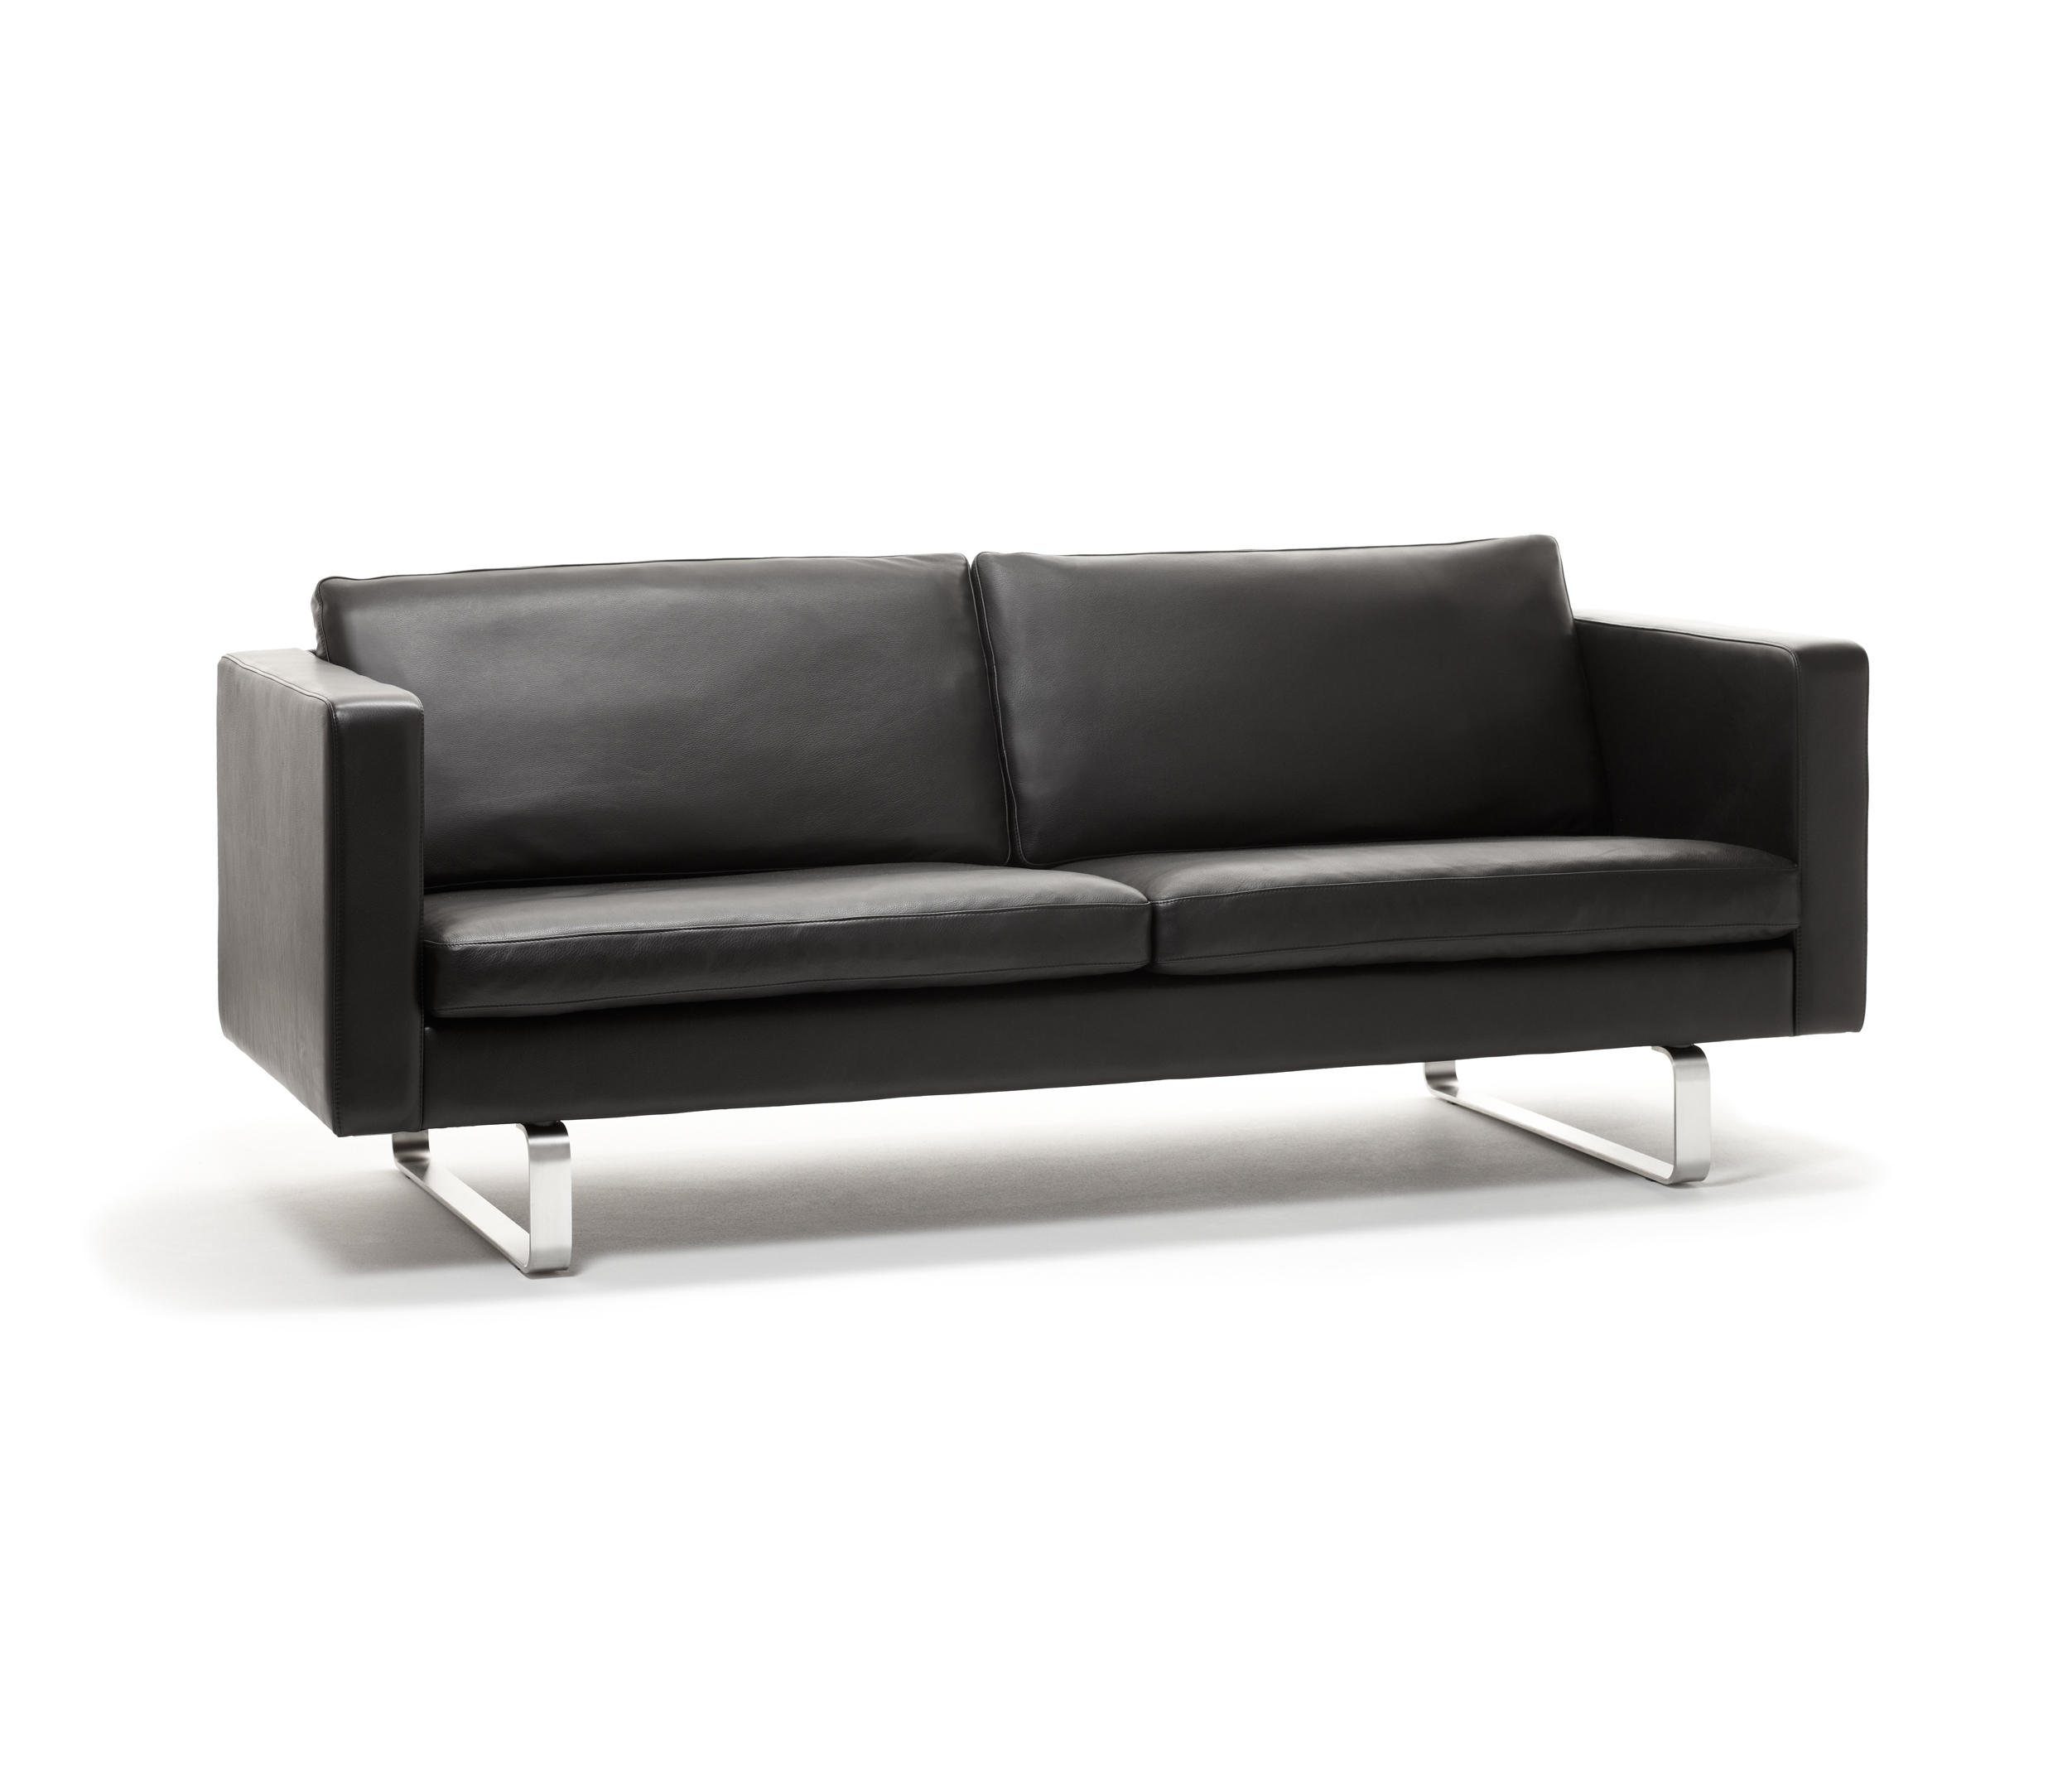 SOUL SOFA Lounge sofas from Stouby